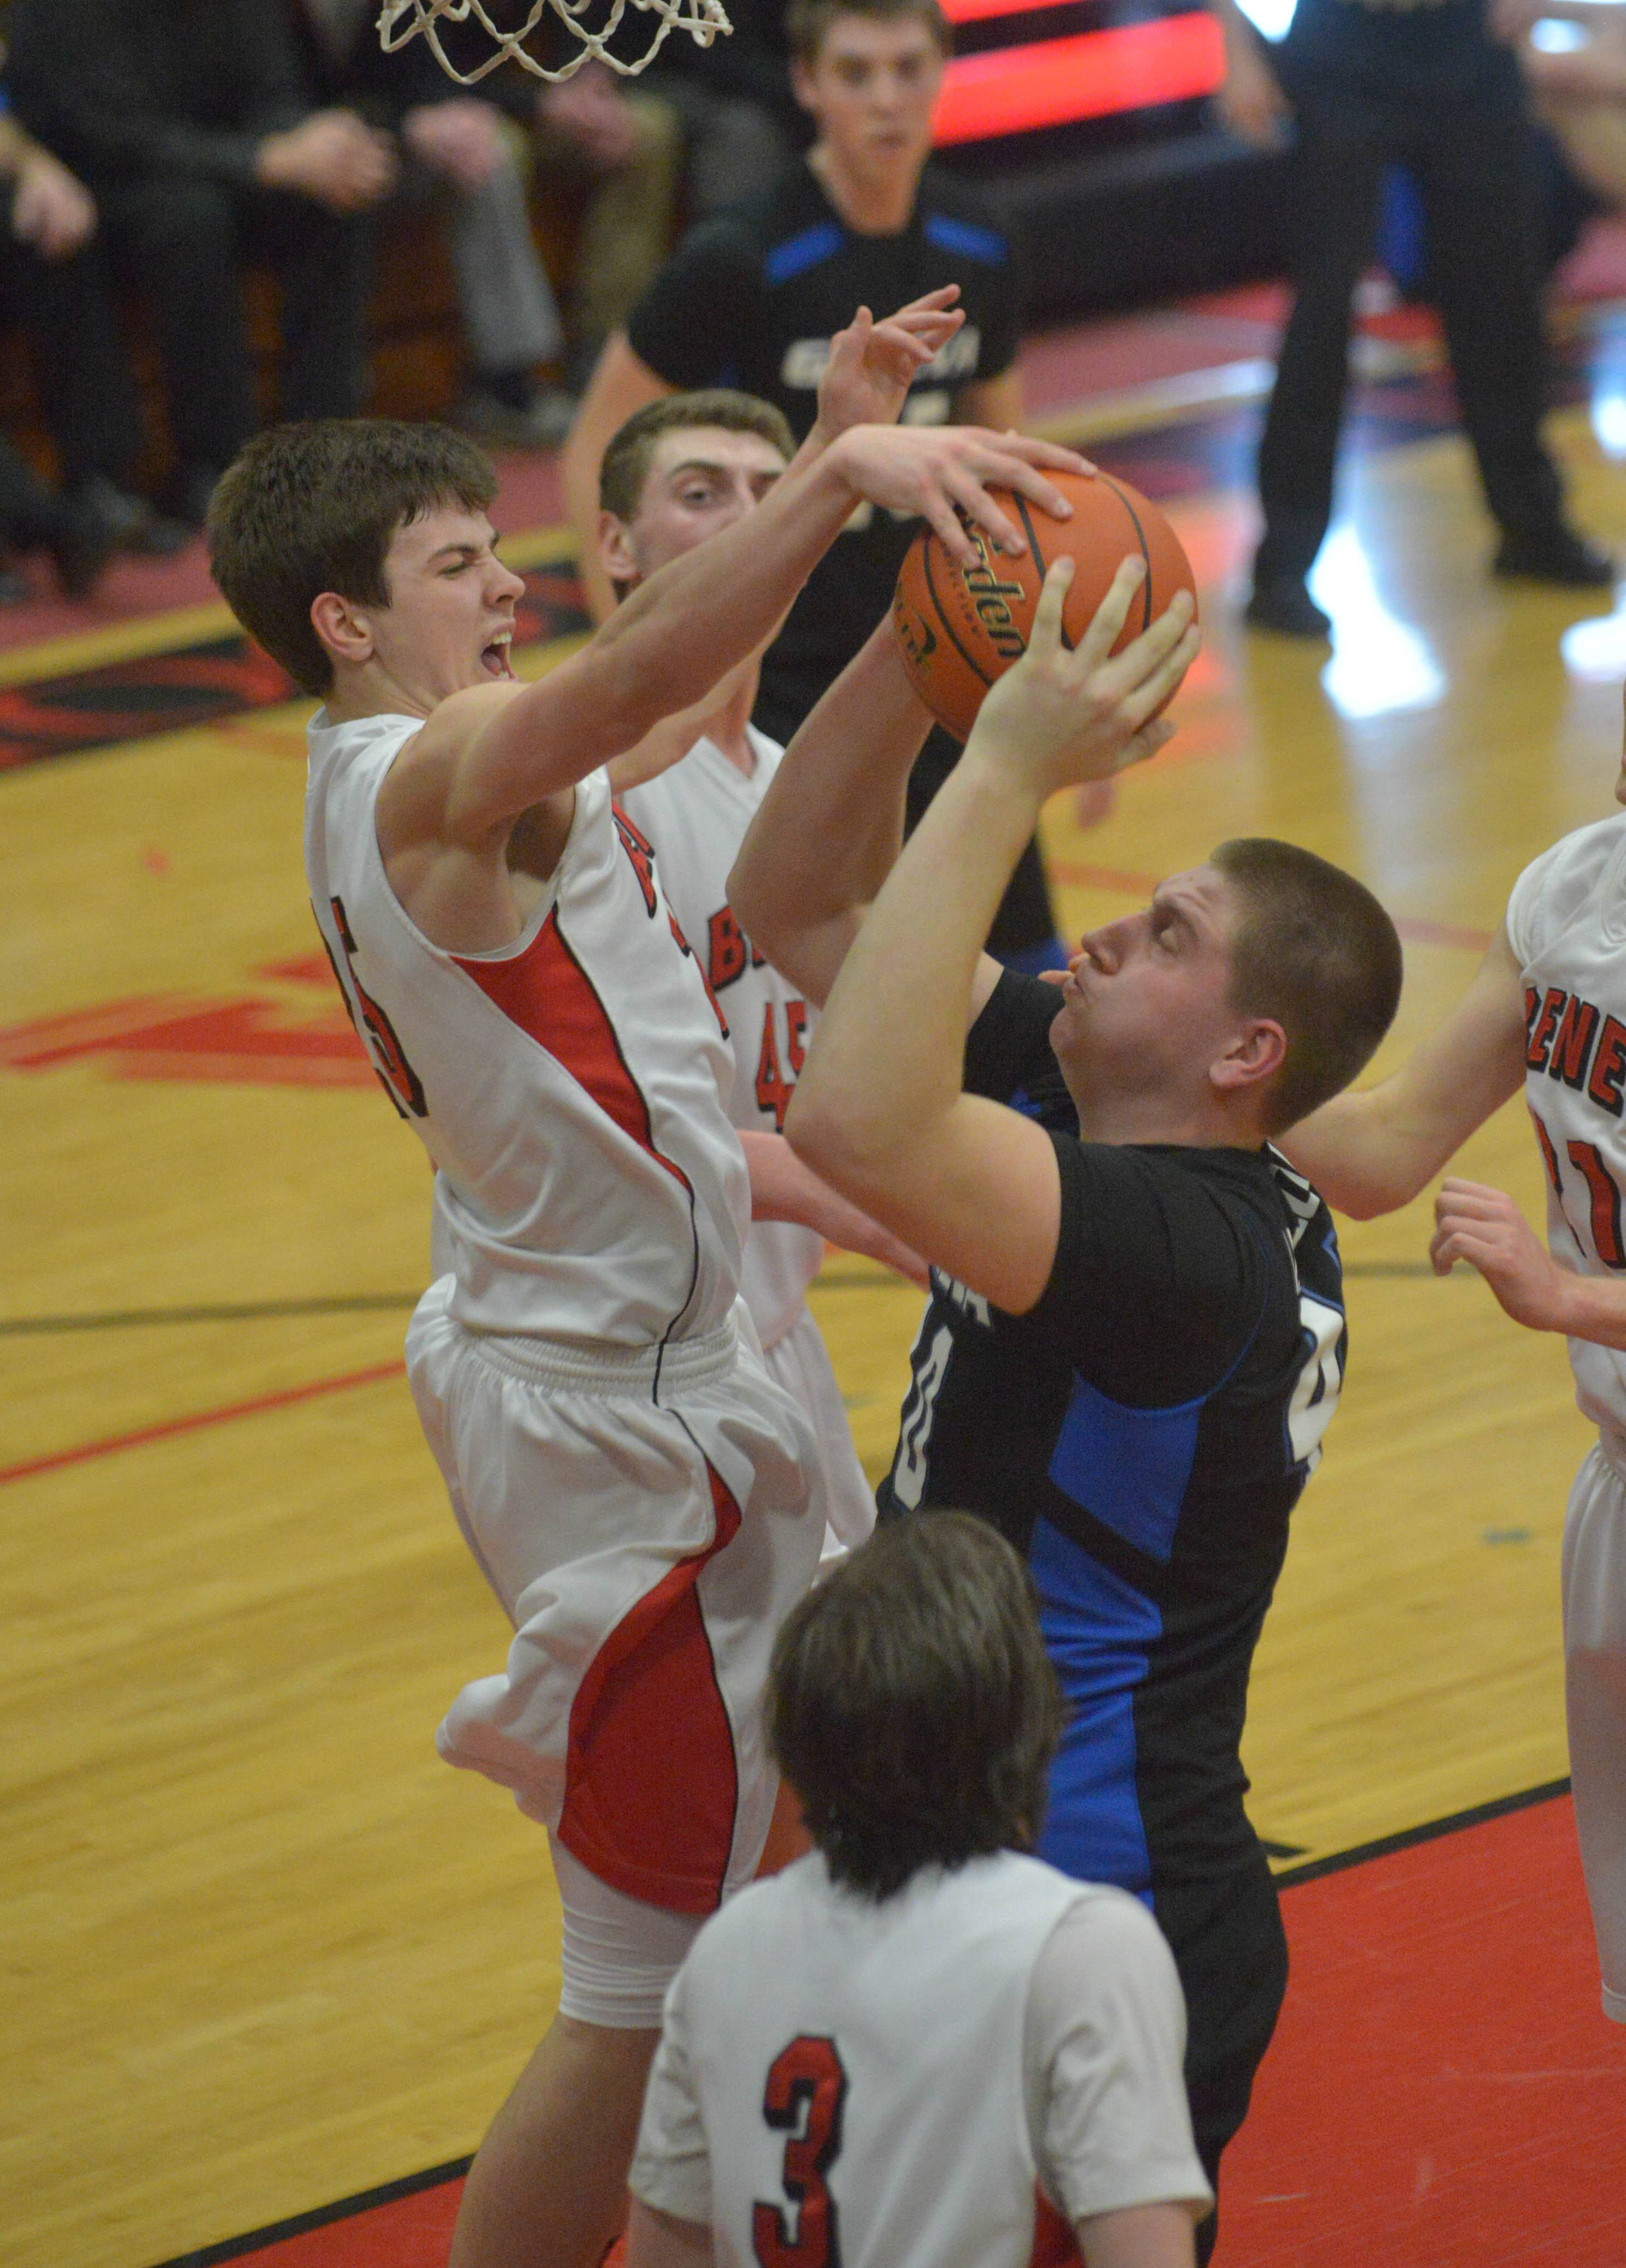 (25) Liam Nelligan of Benet blocks shot from (40) Loudon Vollbrecht of Geneva during the Benet vs. Geneva Class 4A East Aurora boys basketball sectional final Friday.